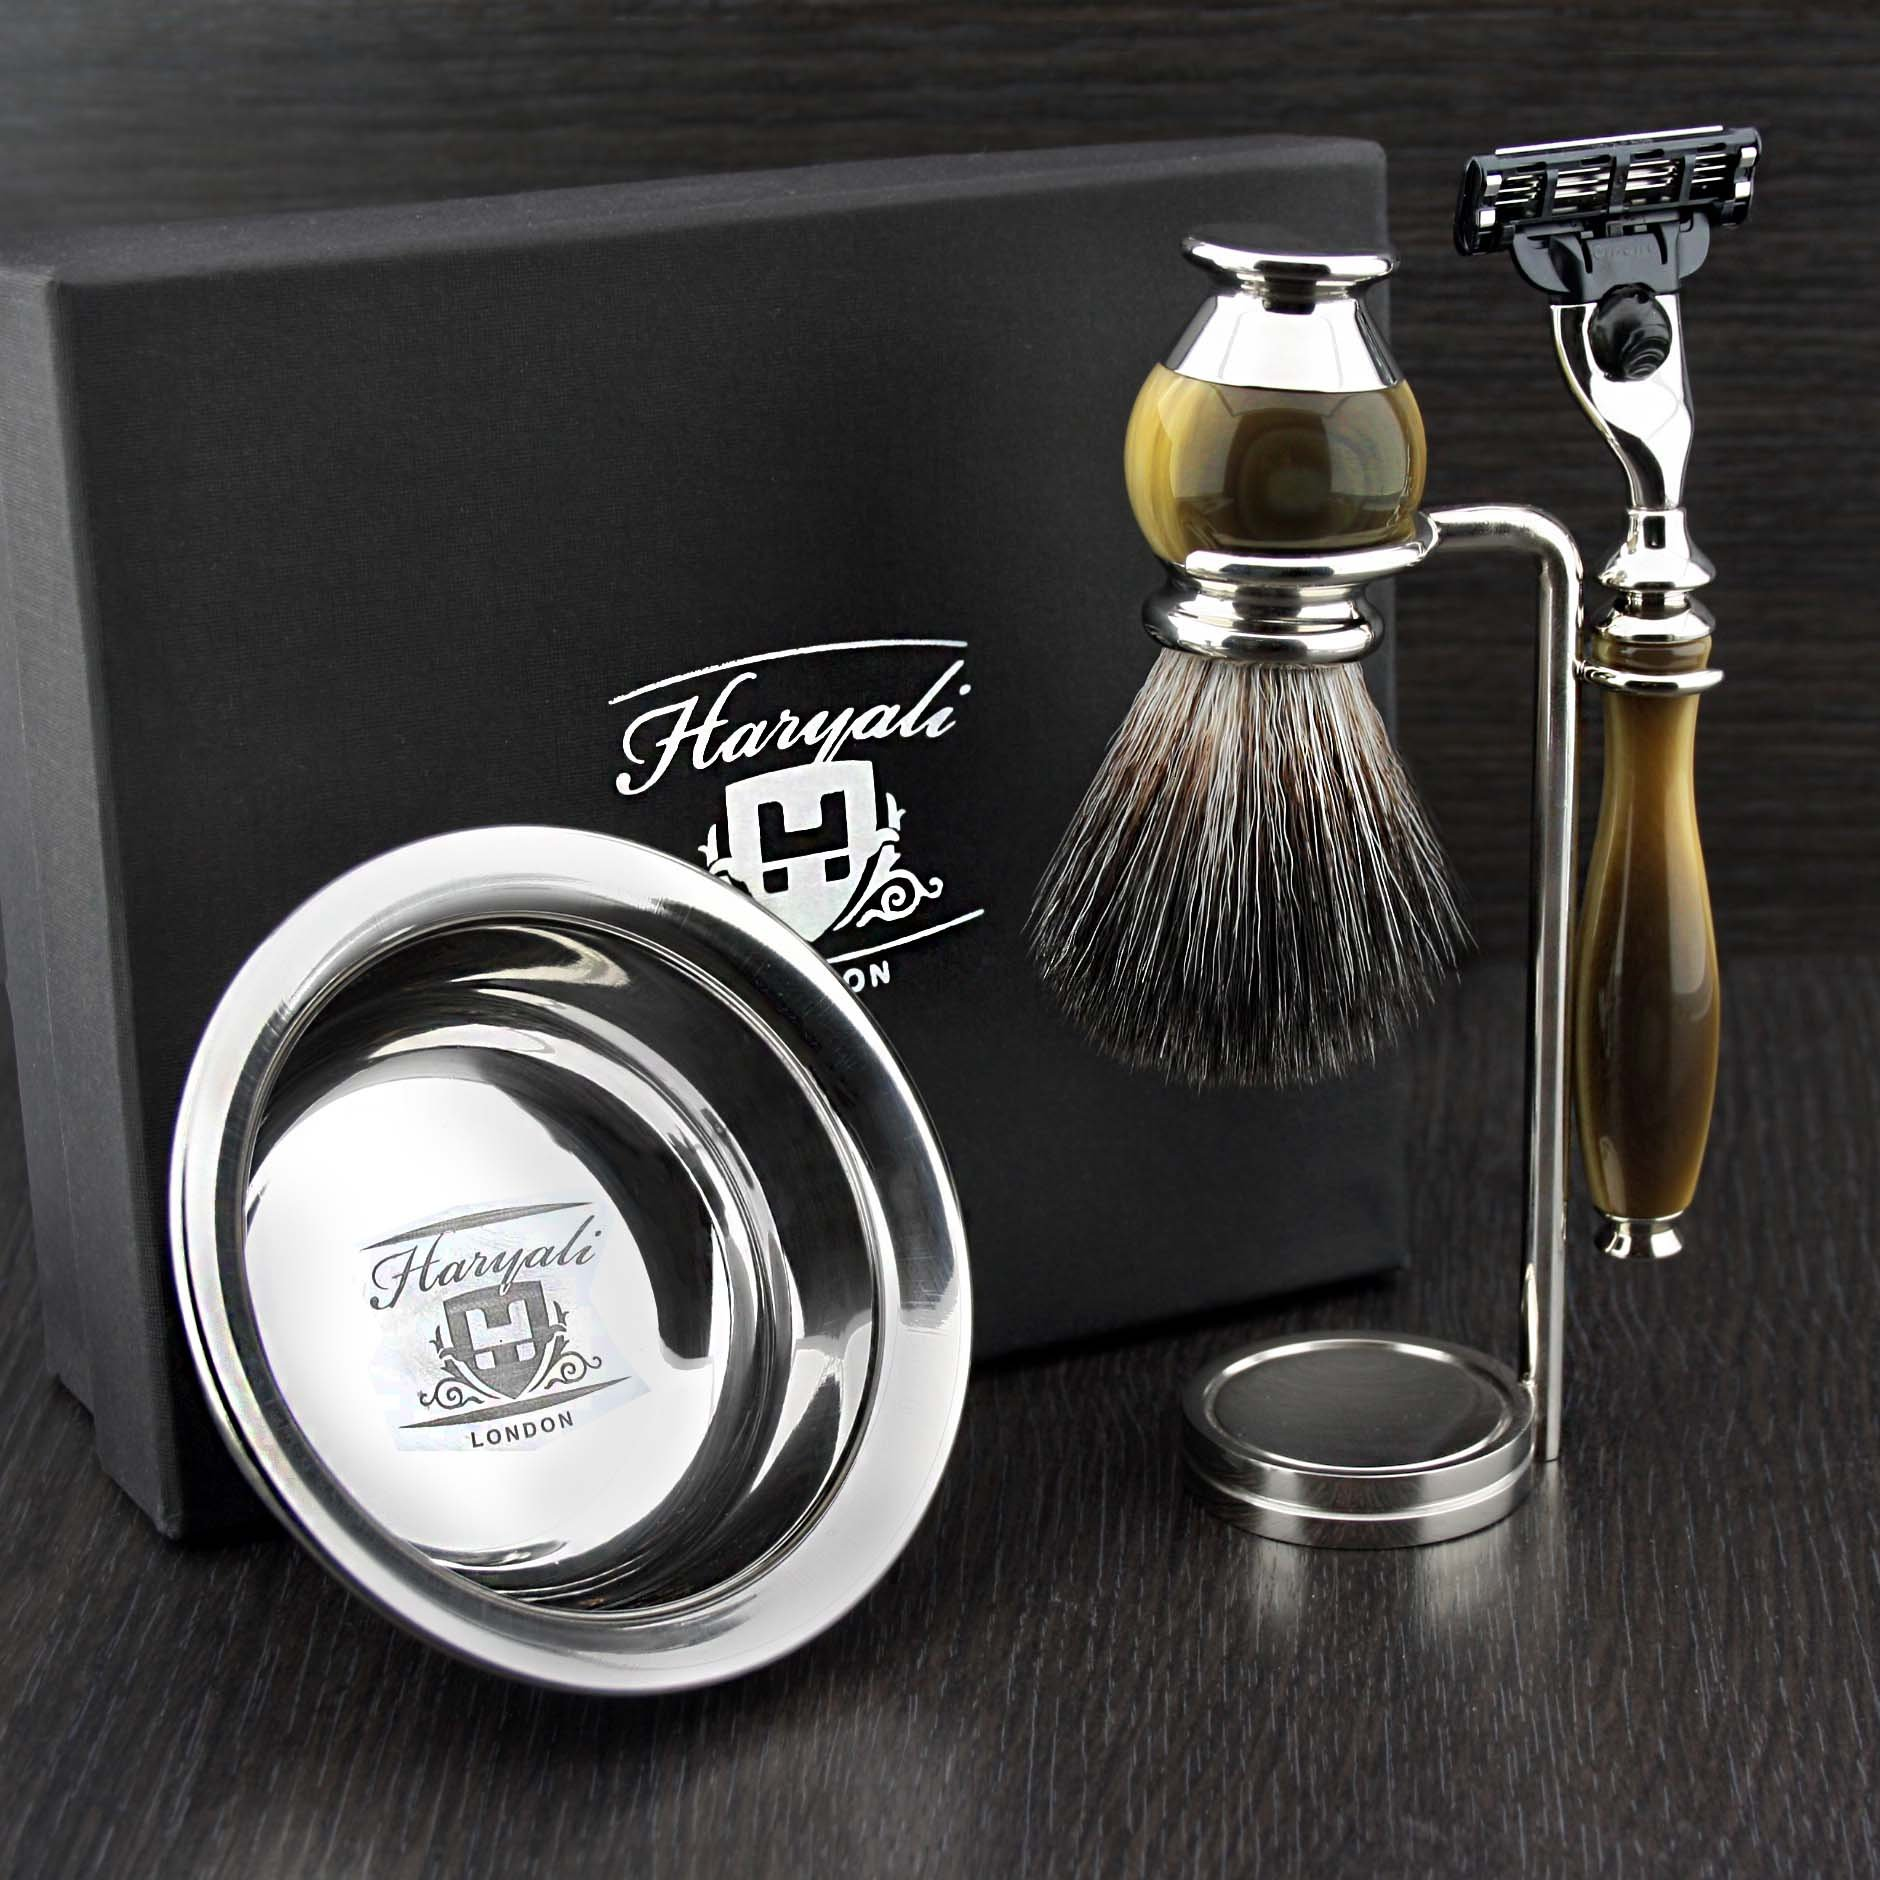 Haryali London 4 Pc Mens Shaving Kit 3 Edge Razor With Black Badger Hair Shaving Brush, Stand and Stainless Steel Bowl Perfect Set For Men by Haryali London